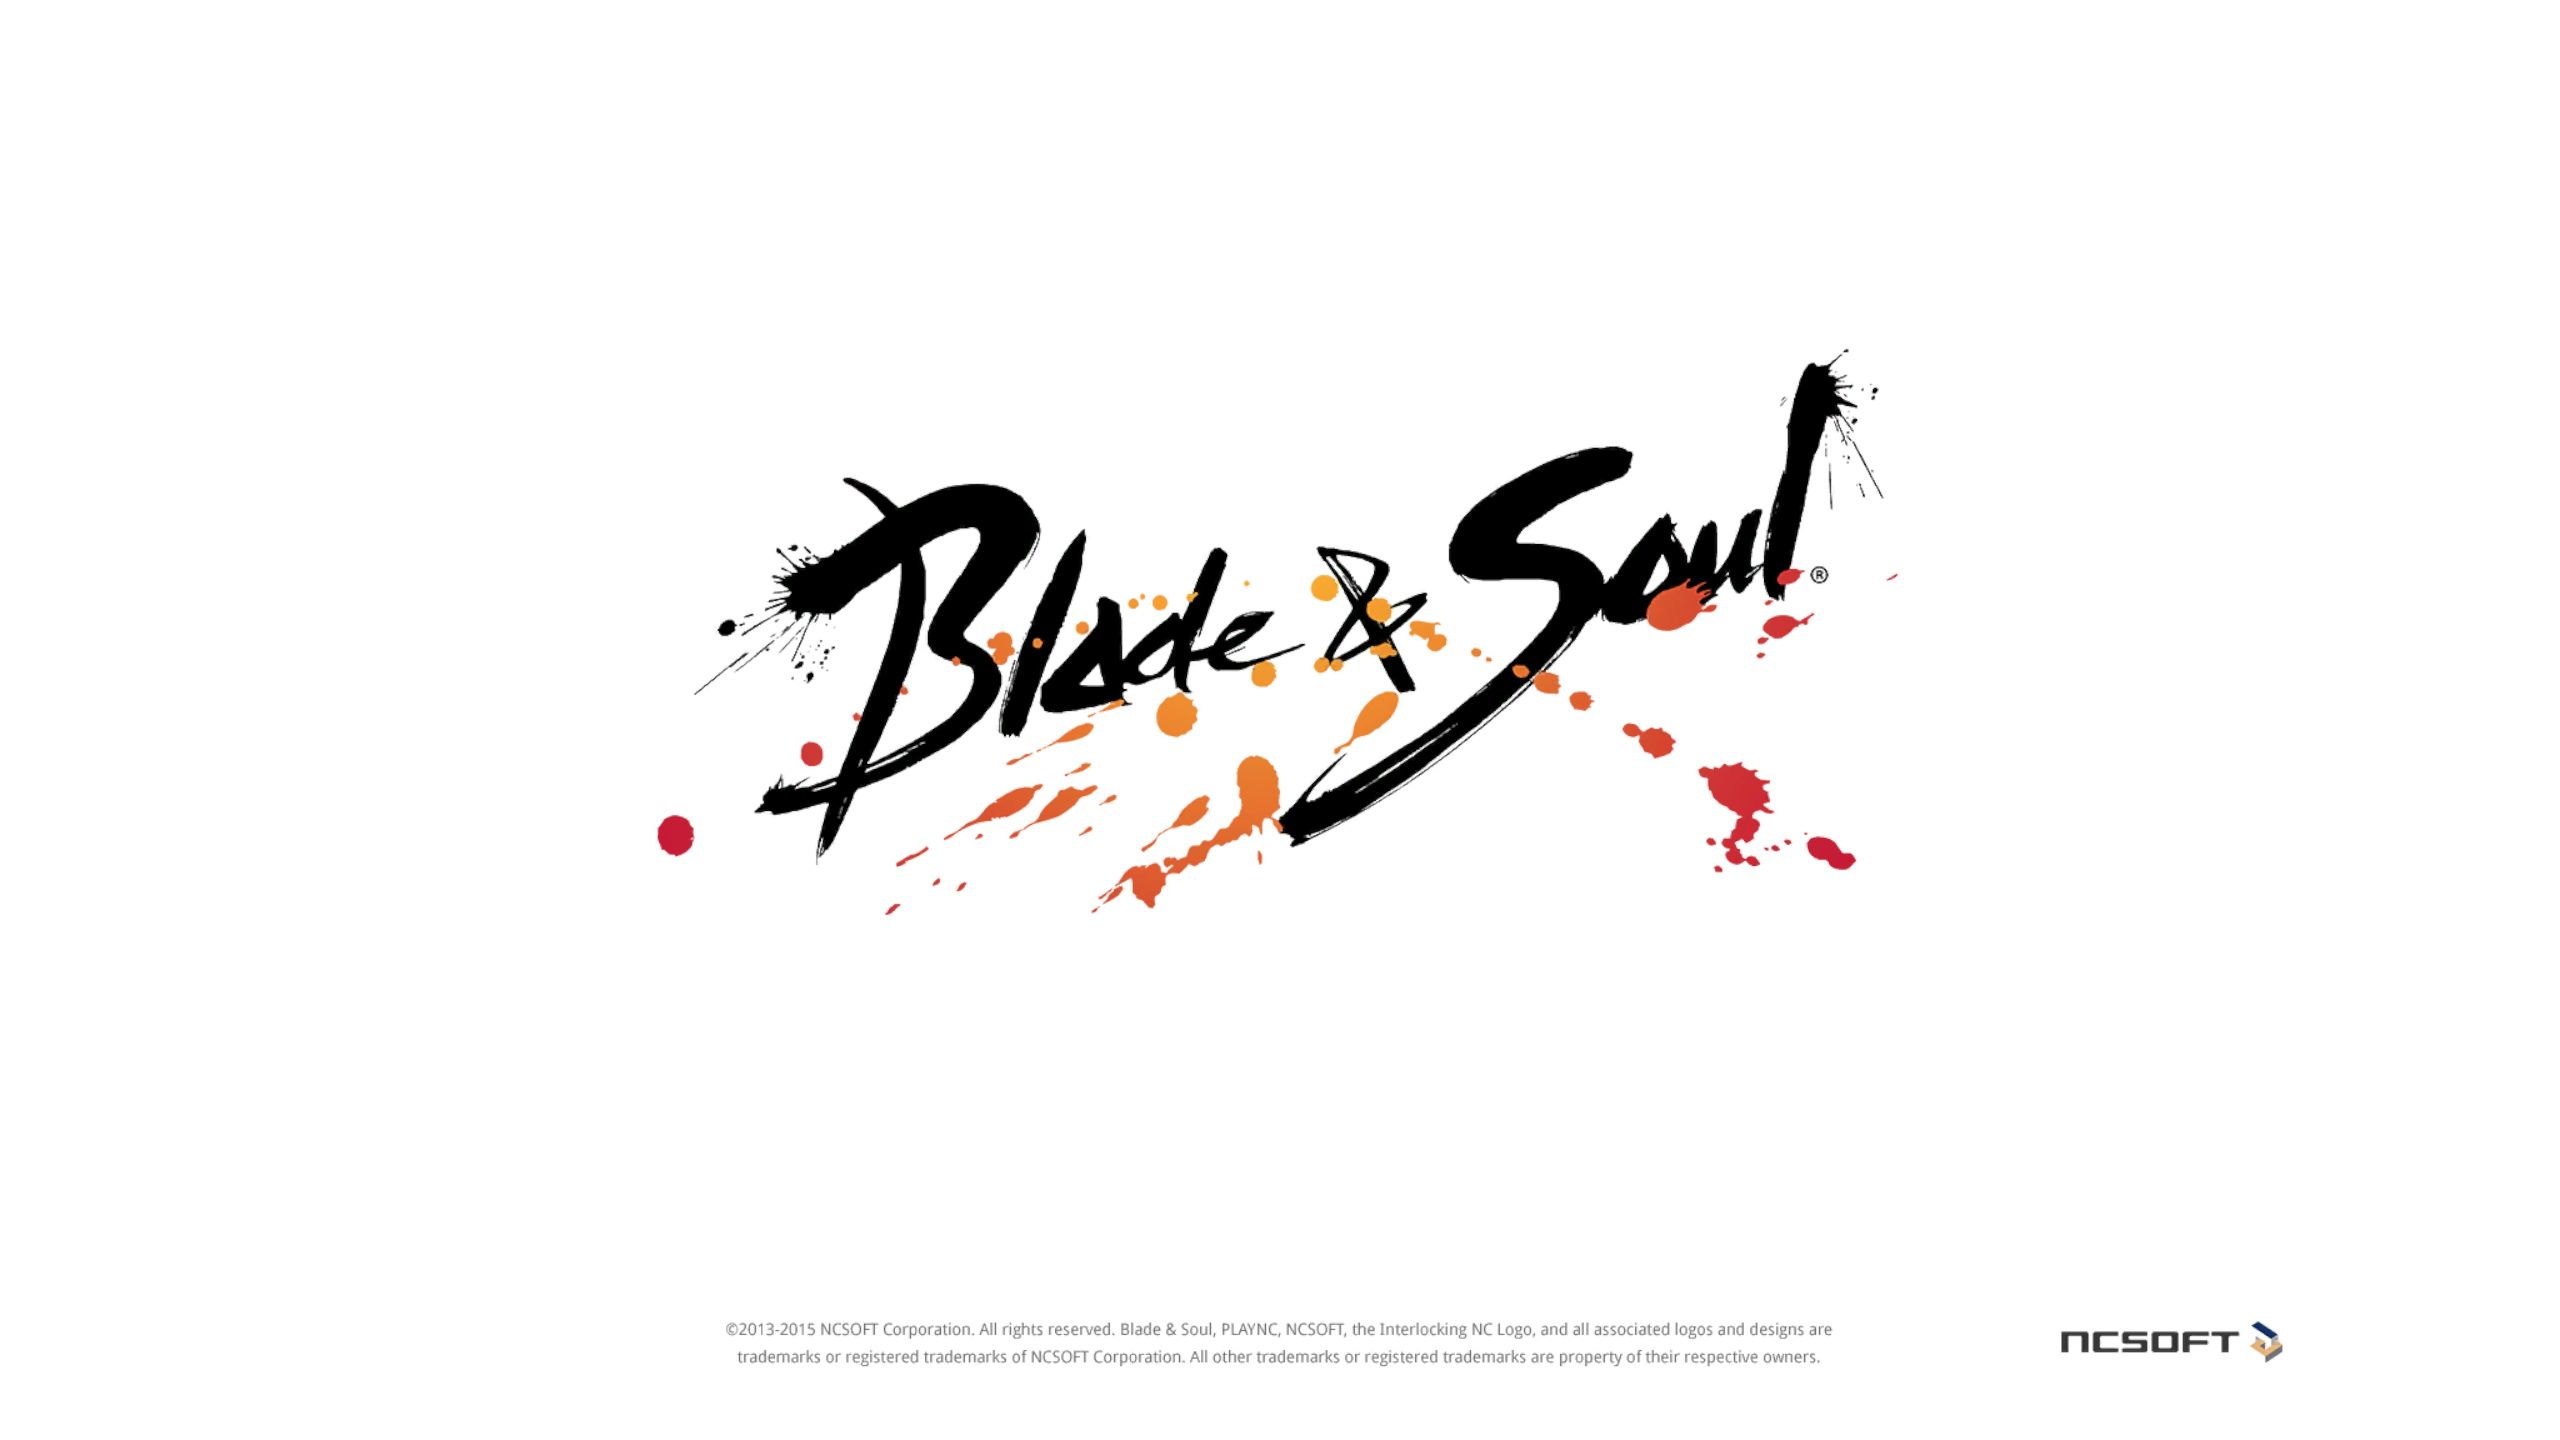 Blade & Soul Logo Download Blade & Soul Logo Wallpaper on.